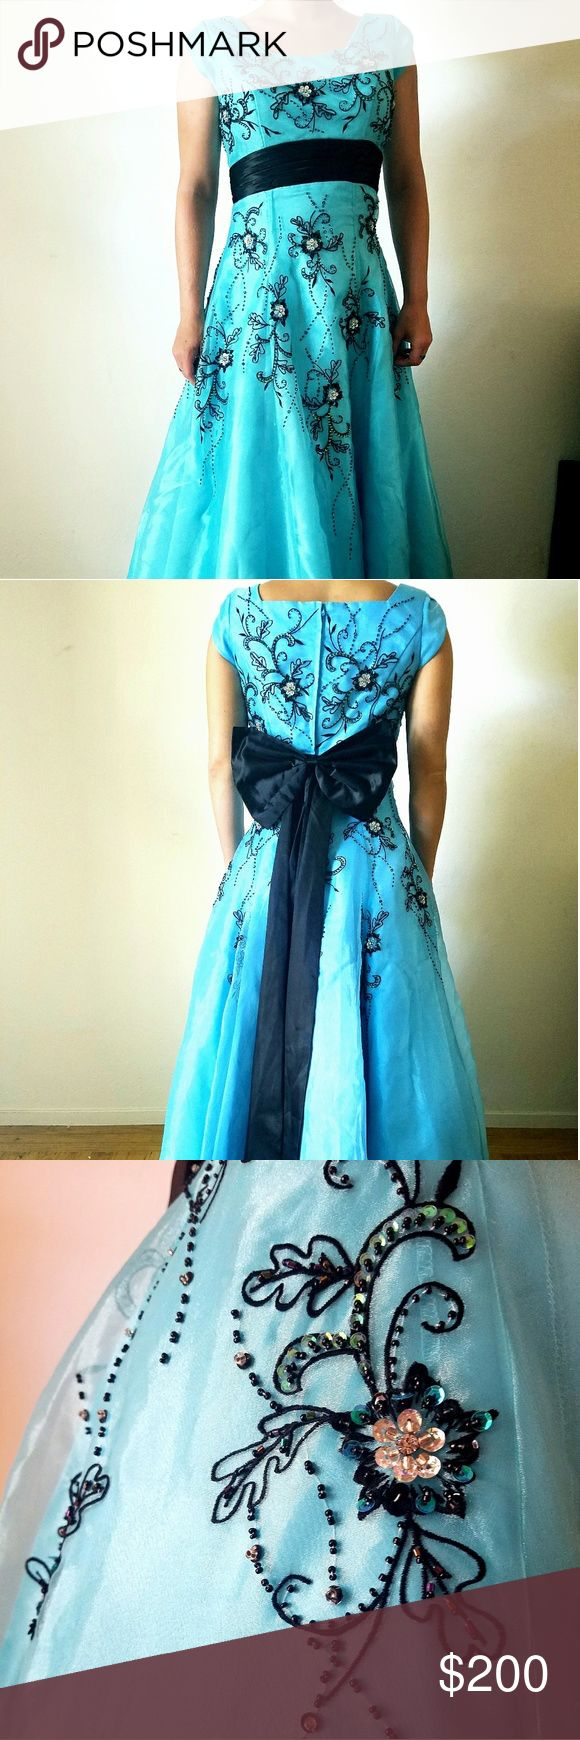 Modest A-line Blue Prom Dress with Black Beading Floor-length, A-line, cap sleeve prom dress purchased to attend a Mormon prom. Modestly styled in the front and back.  Dress is blue with a sheer layer on top and white-netting petticoat underneath. Black bow snaps on to the black waist band in back.  Minor damage to under-layers (caught on heel of shoe) and some beading on bodice. Needs to be ironed, but otherwise in good condition.  Worn once to Mormon prom and once to a high school prom…